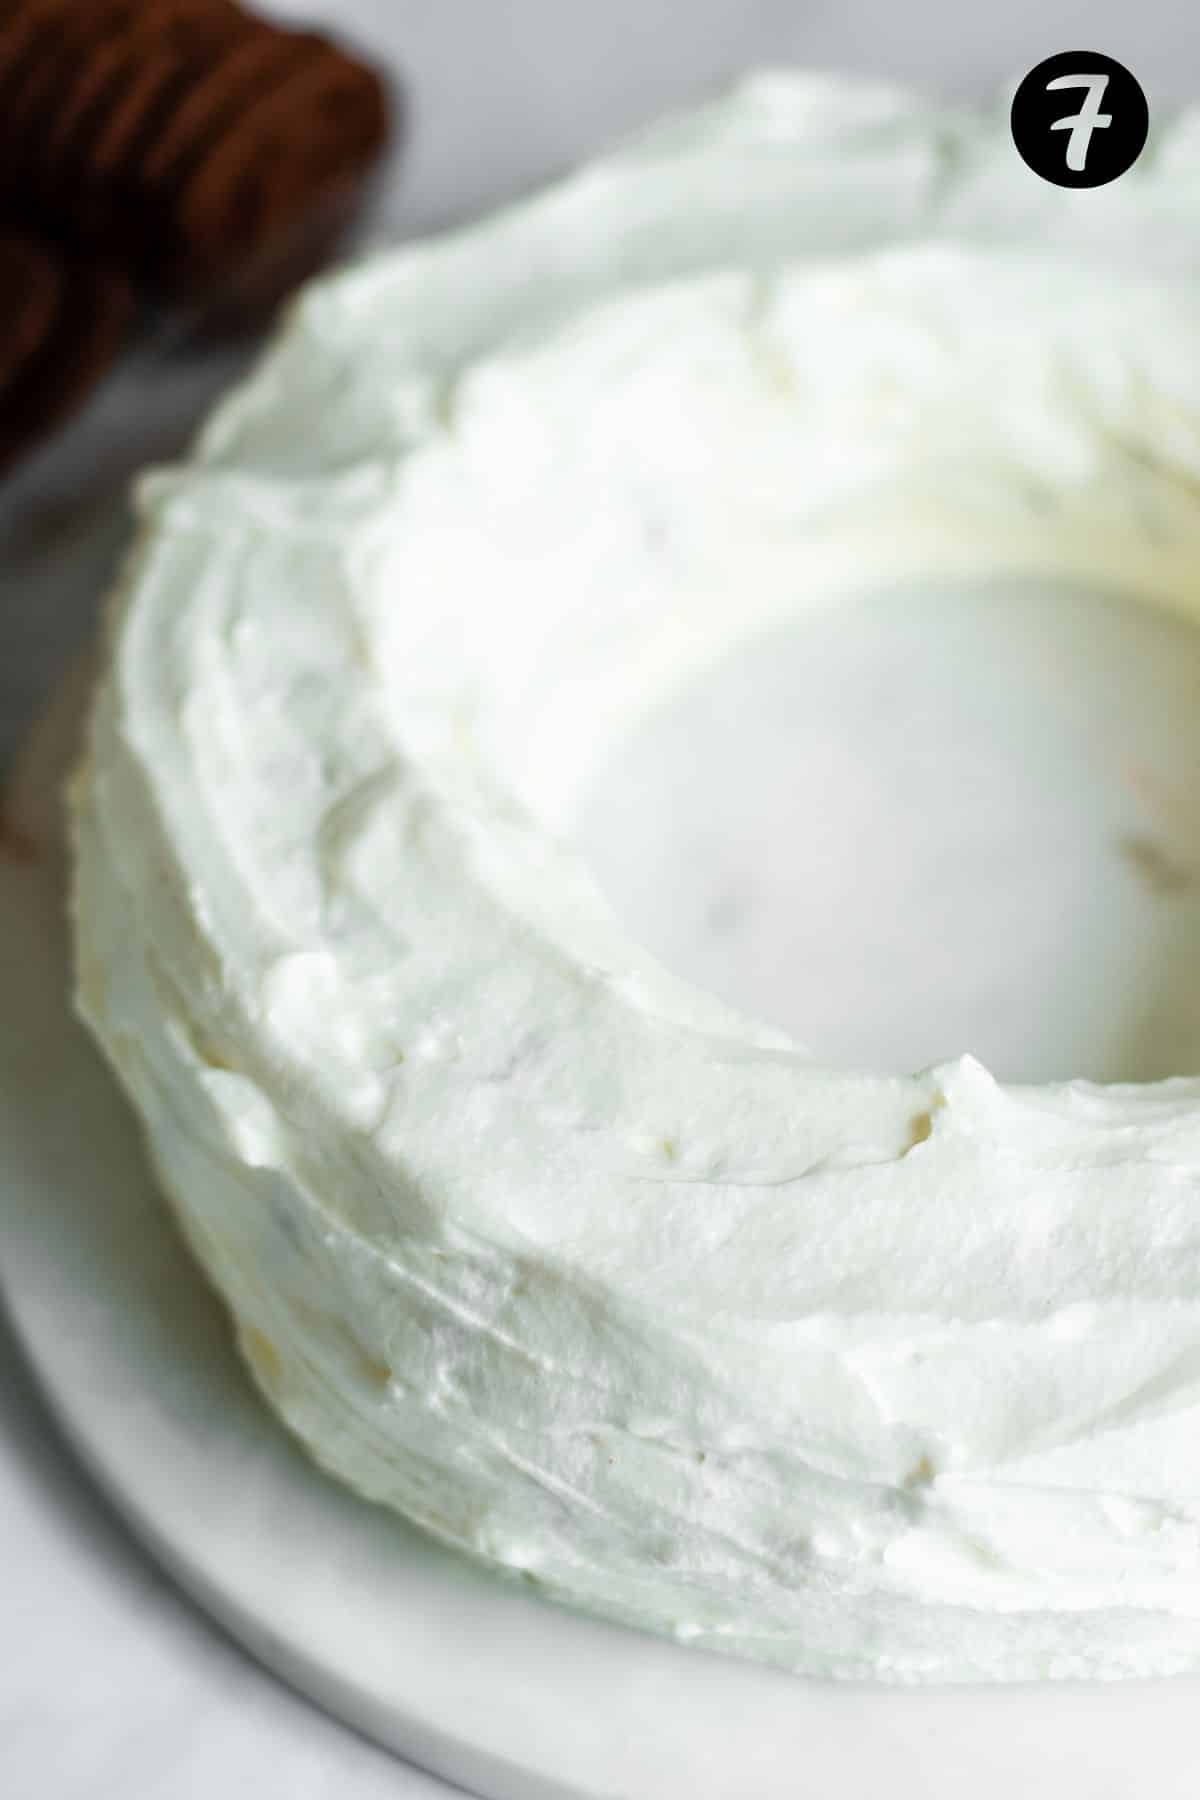 wreath shaped cake covered in whipped cream